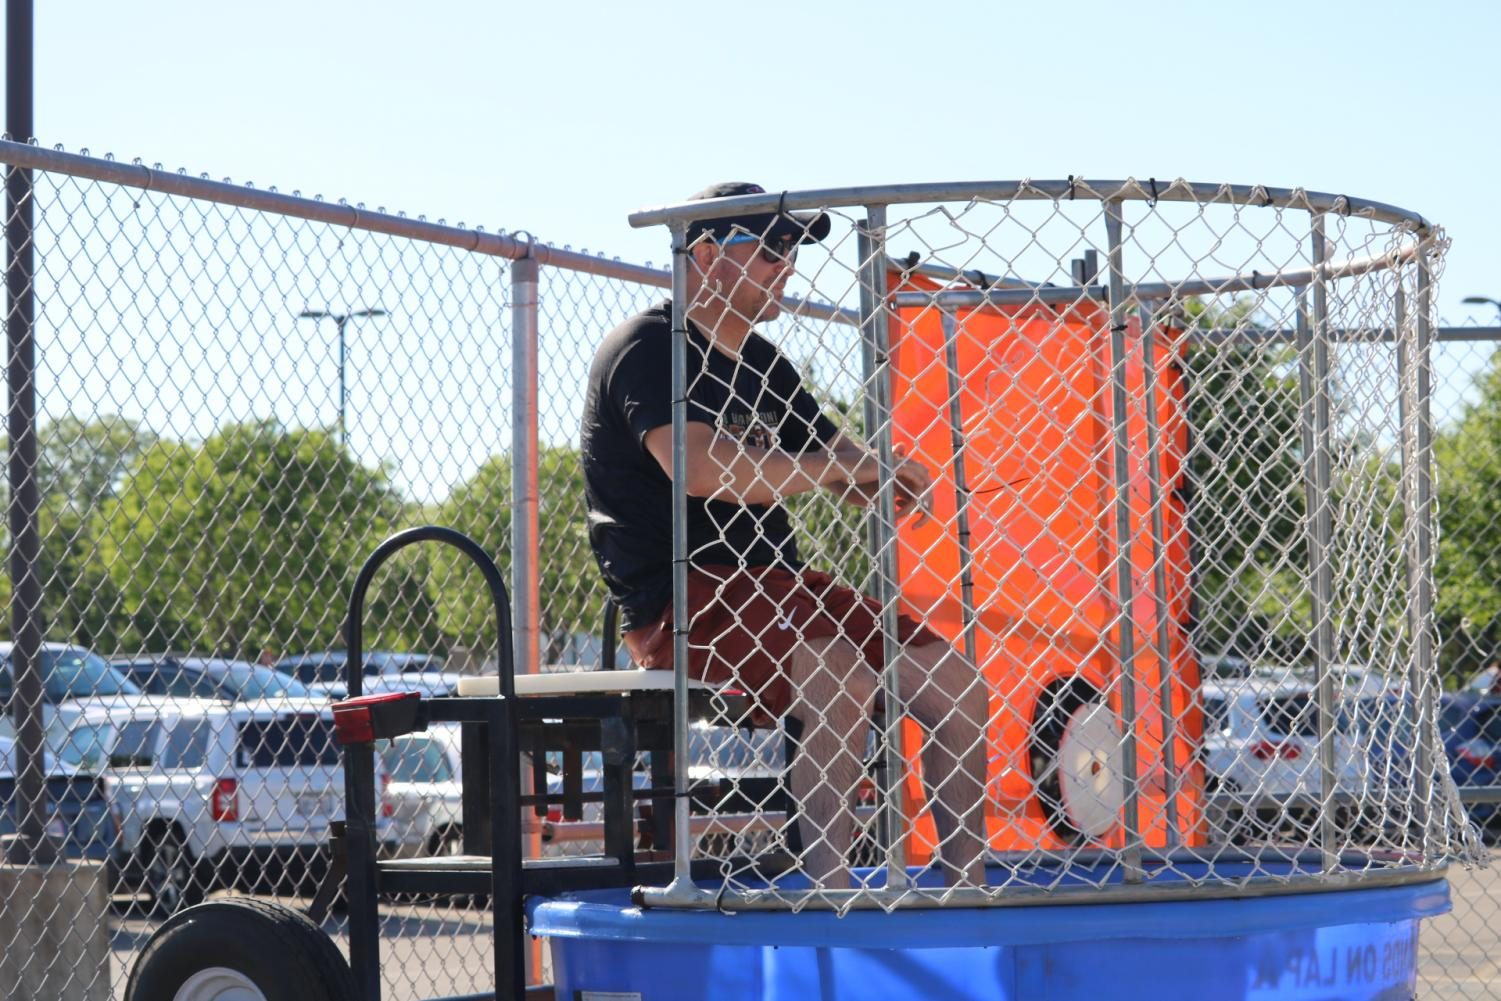 Principal+Mario+Acosta+sits+in+the+dunk+tank+as+students+attempt+to+dunk+him.+